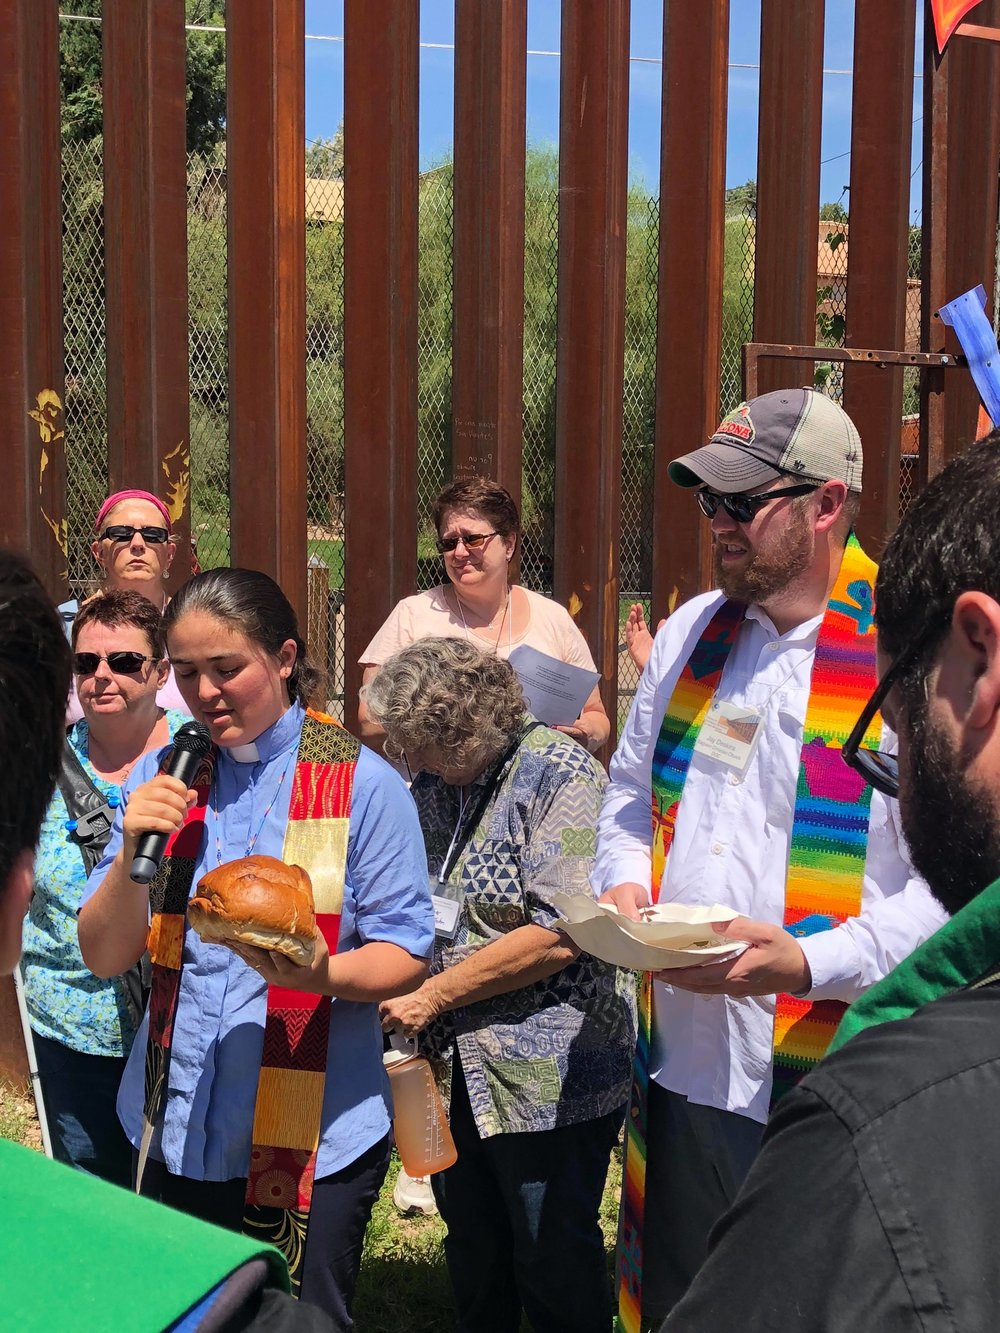 communion at the border - by kelley d.jpg